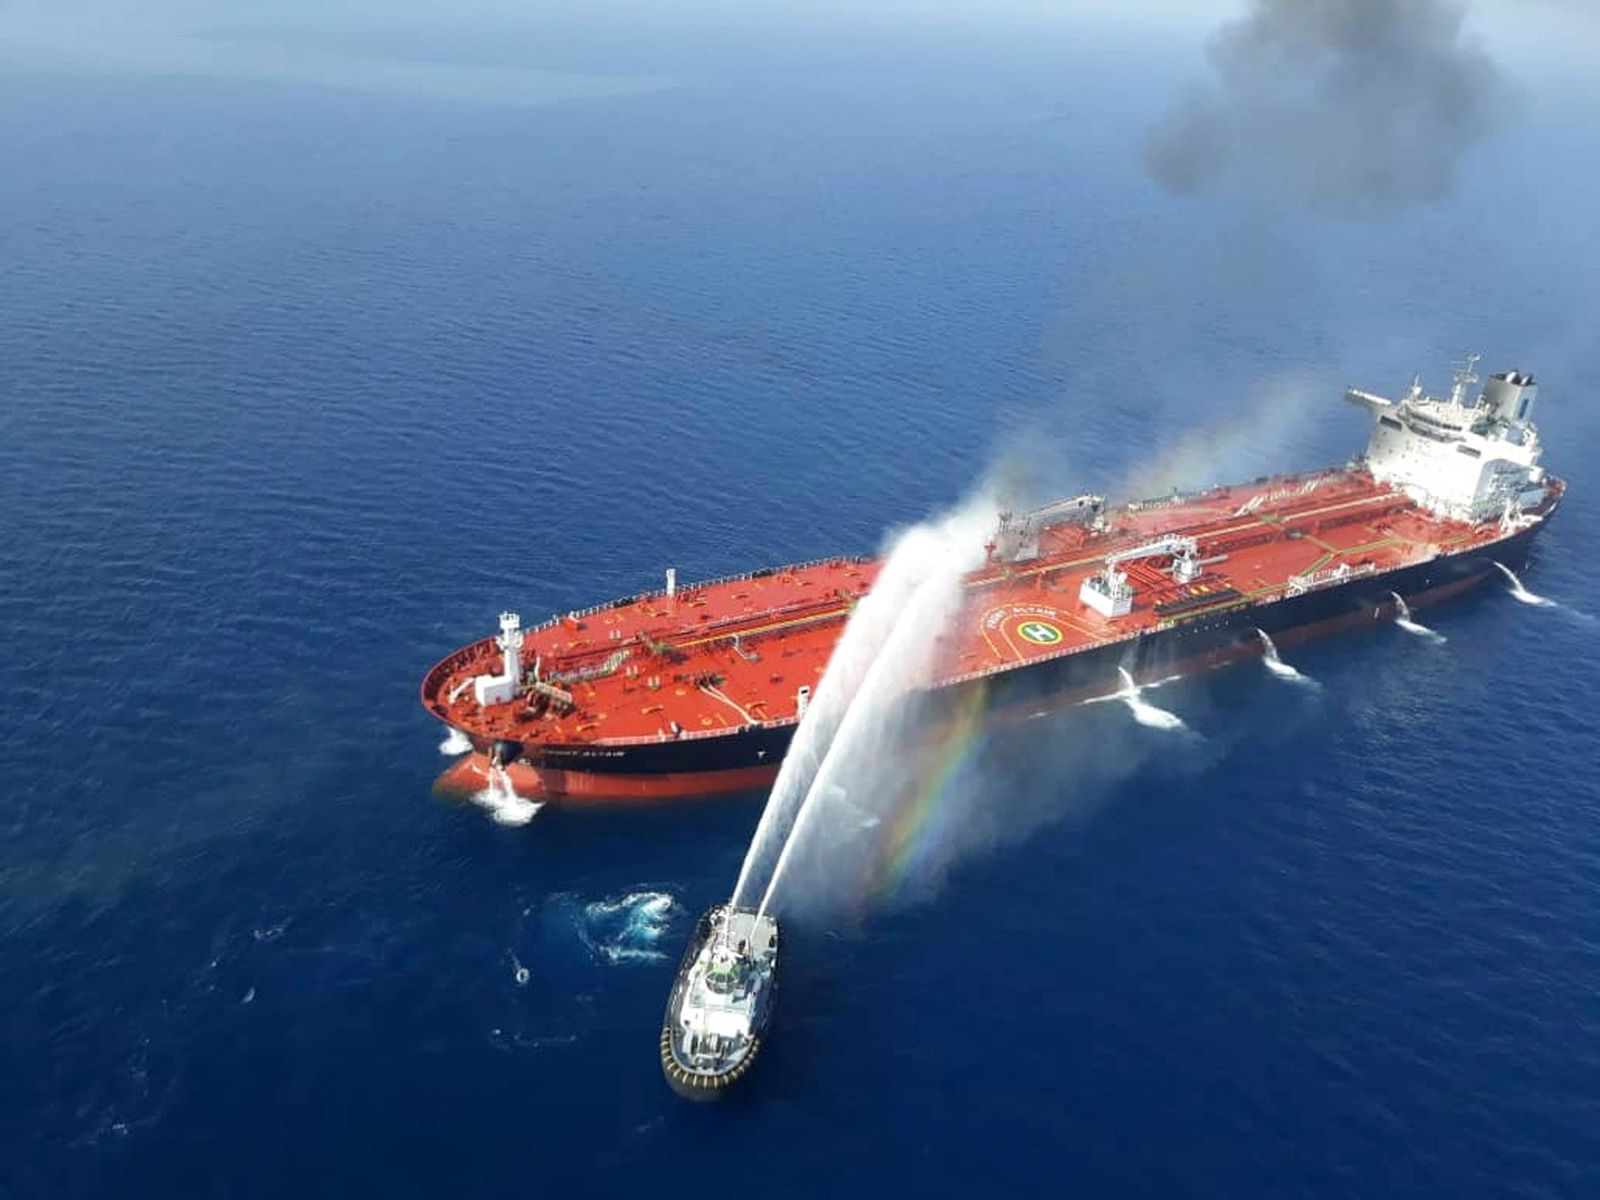 An Iranian navy boat sprays water to extinguish a fire on an oil tanker in the sea of Oman, Thursday, June 13, 2019. Two oil tankers near the strategic Strait of Hormuz came under a suspected attack Thursday, setting one of them ablaze in the latest mysterious assault targeting vessels in a region crucial to global energy supplies amid heightened tension between Iran and the U.S. (AP Photo/Tasnim News Agency)